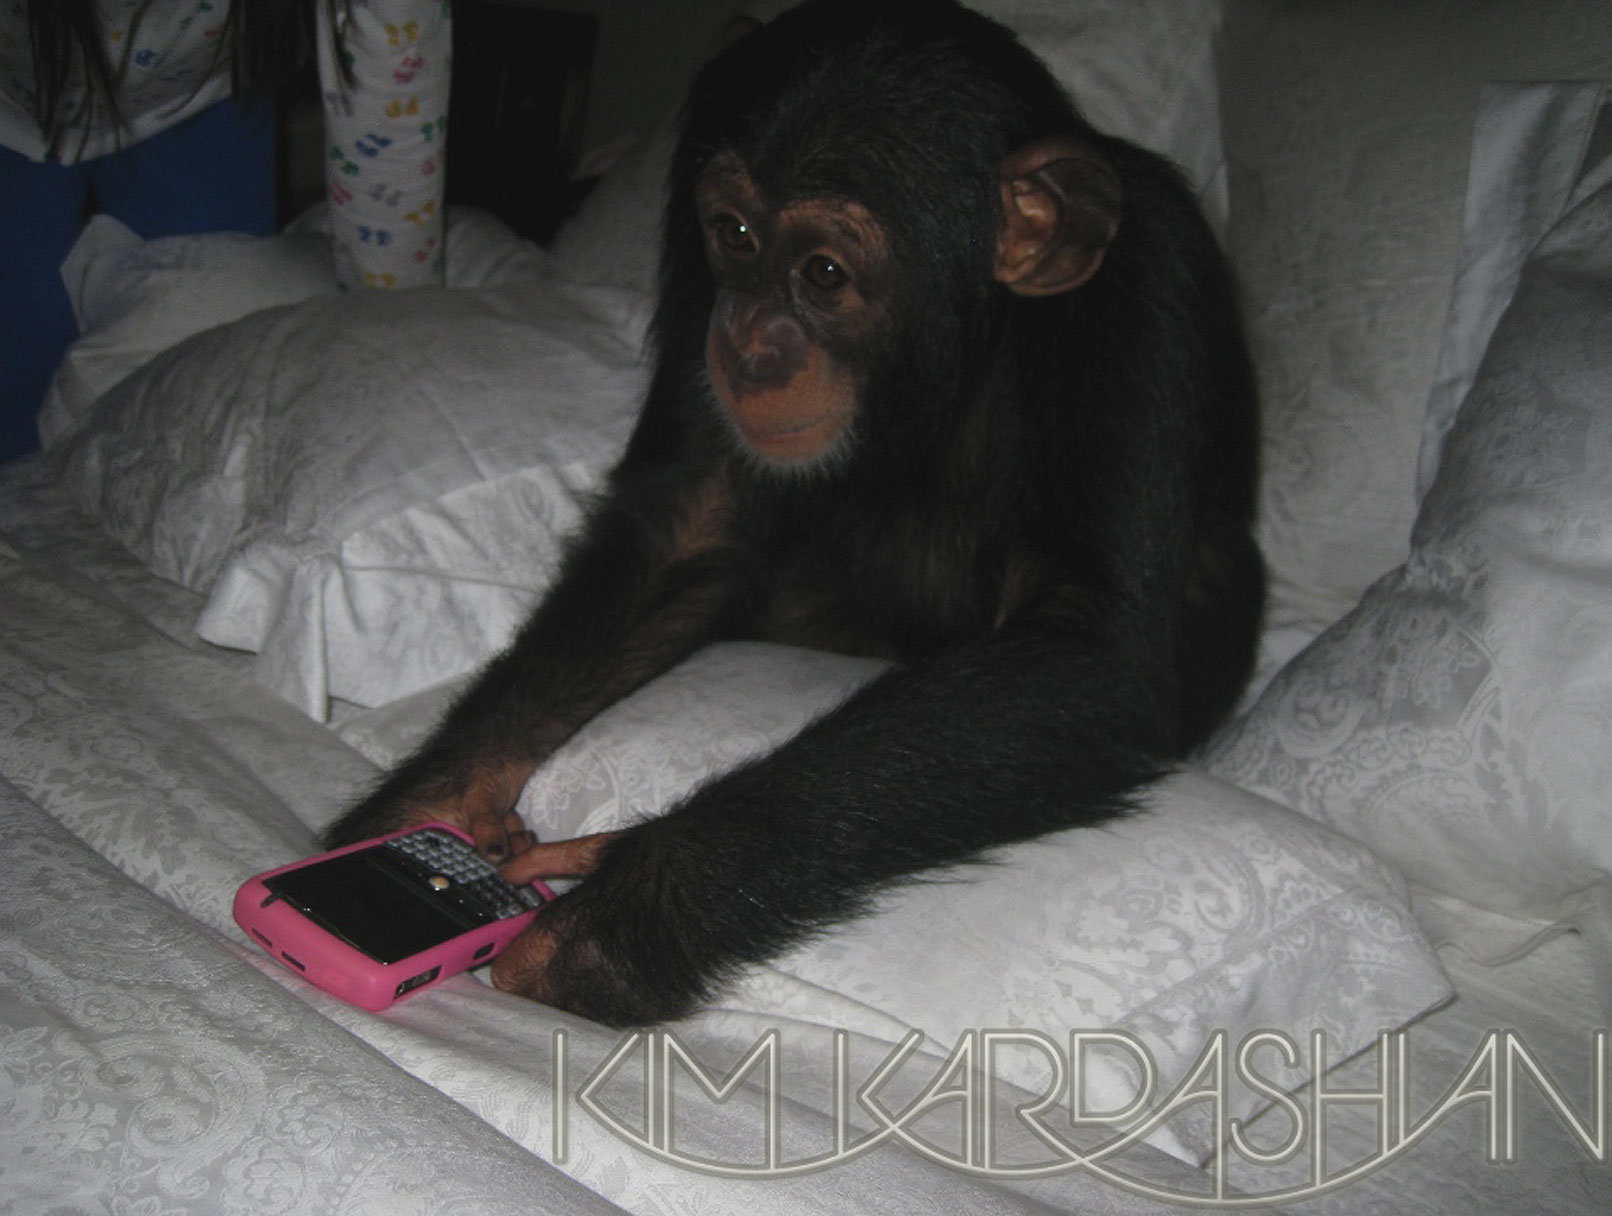 Not Everyone Wild About Kardashian Monkey Adoption